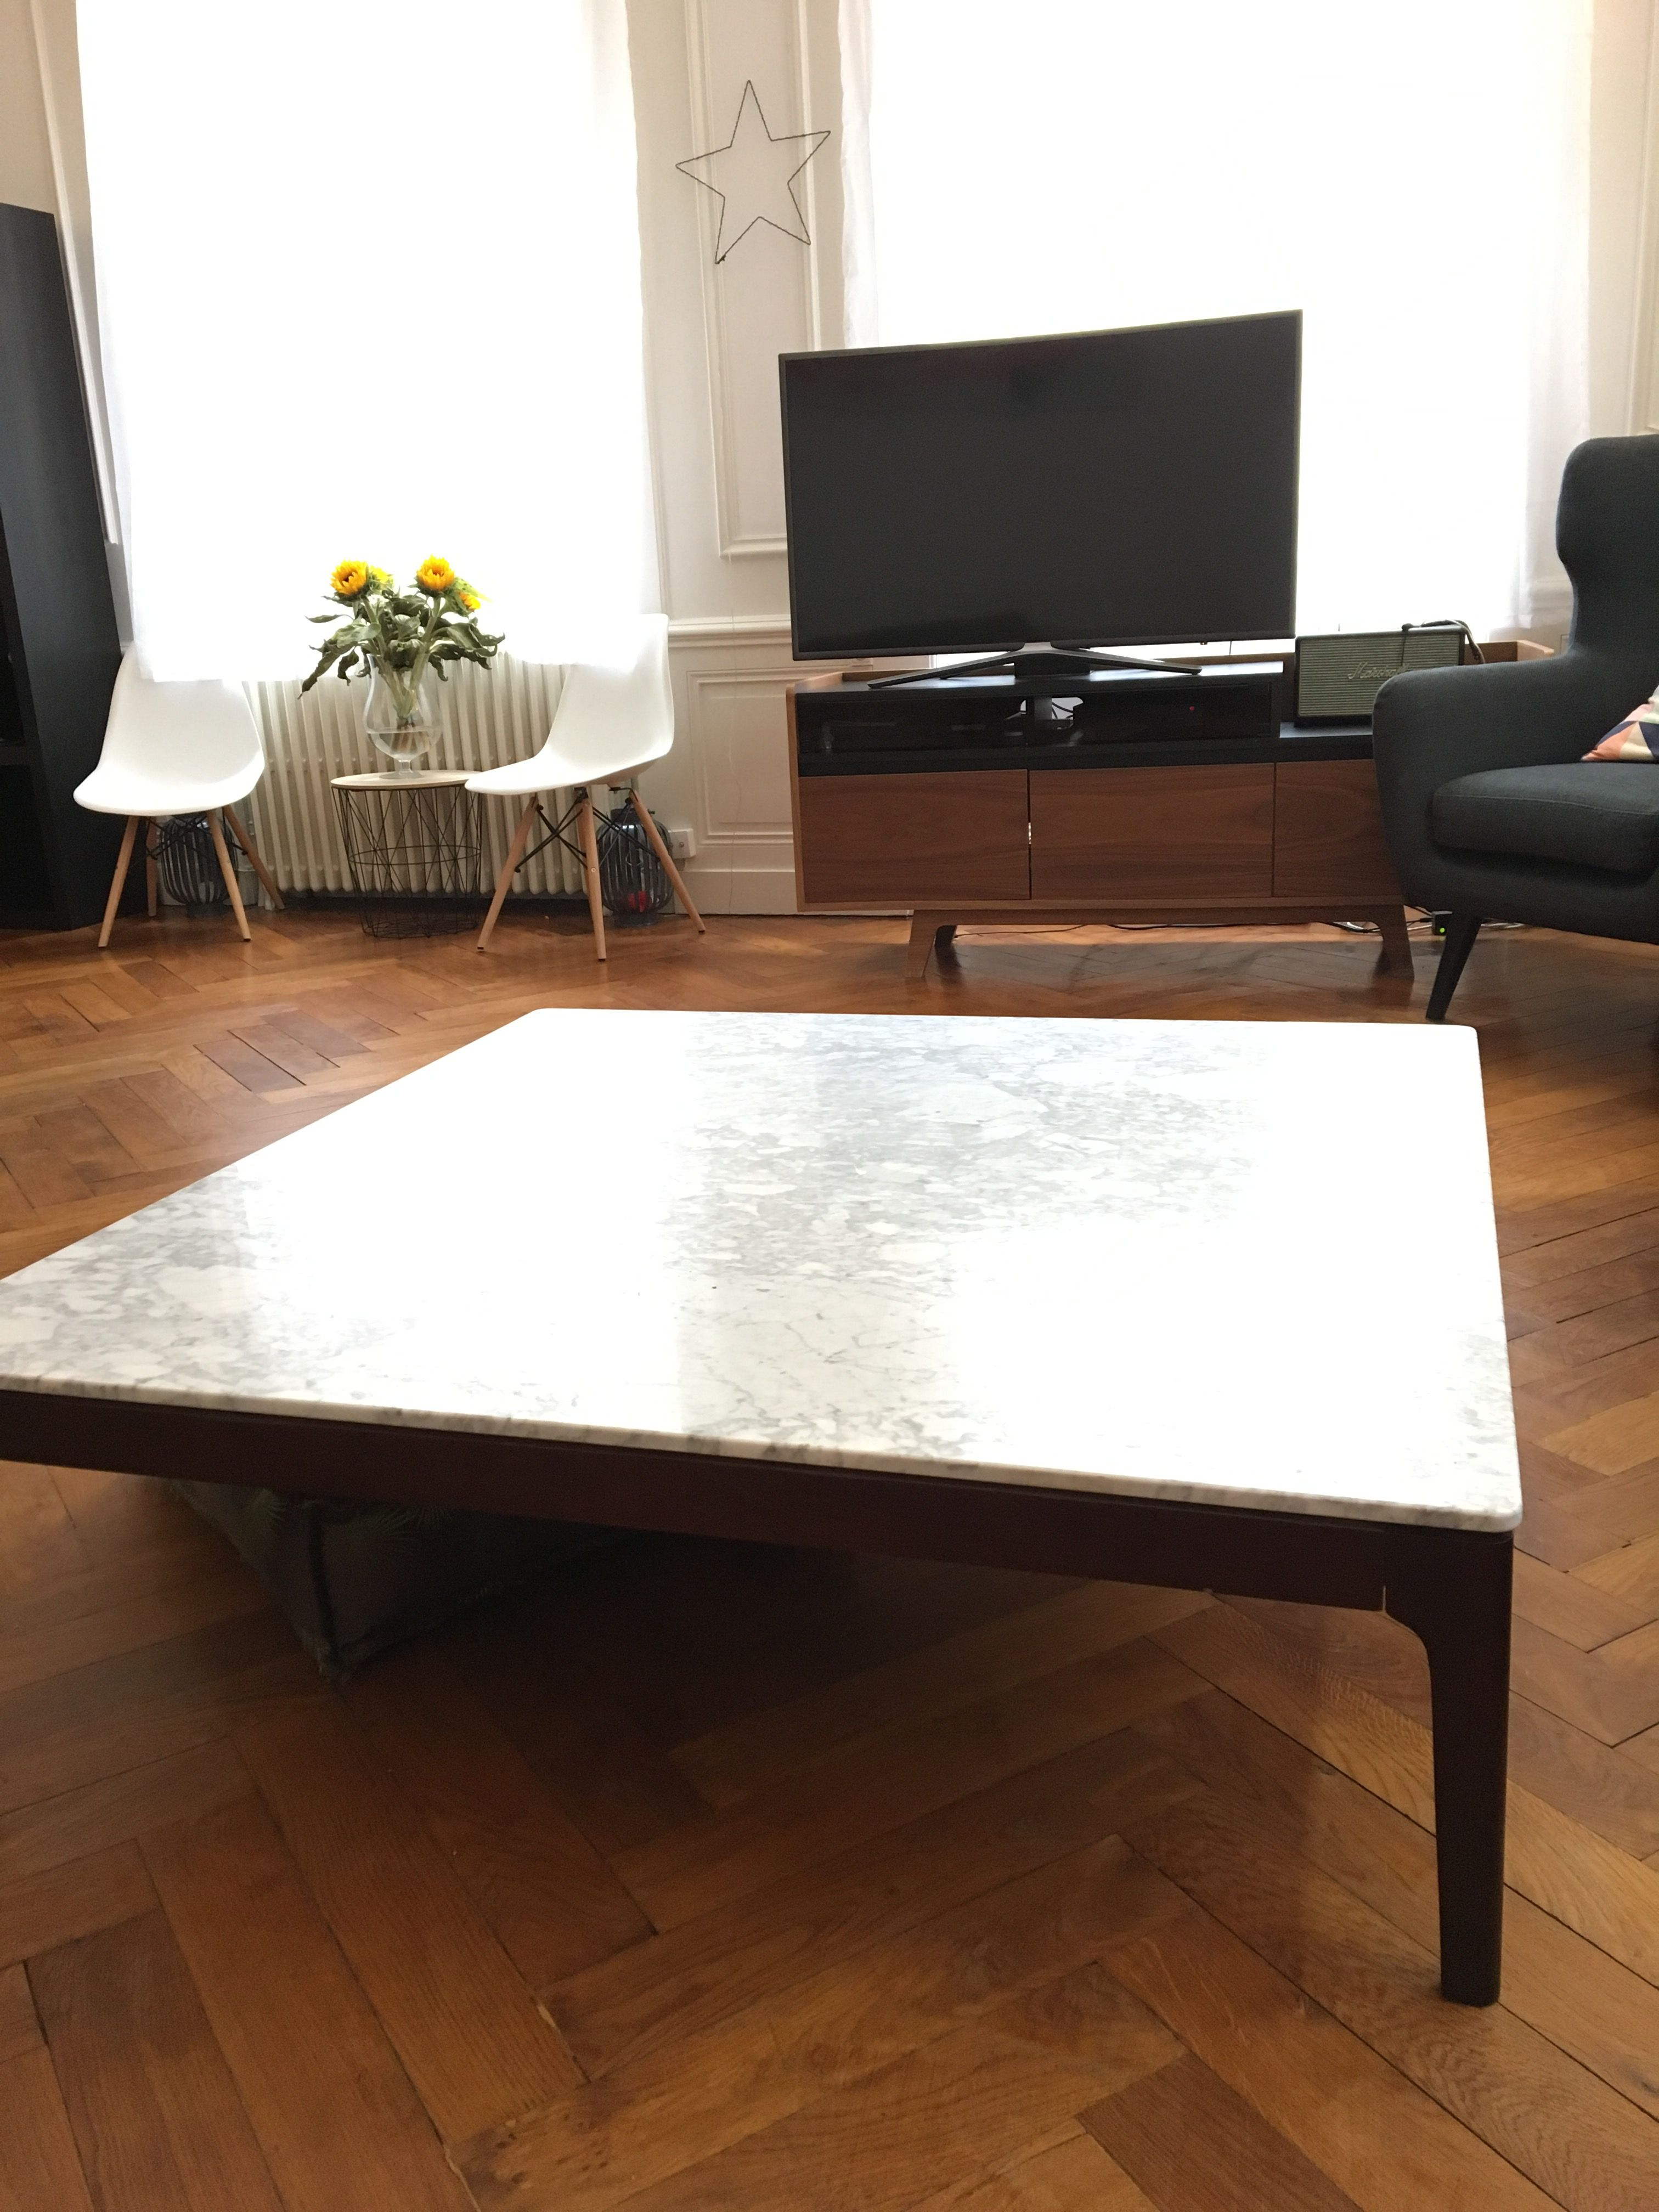 Table Am Pm La Redoute Ampm Table Basse Bois Marbre With Images Coffee Table Home Decor Furniture